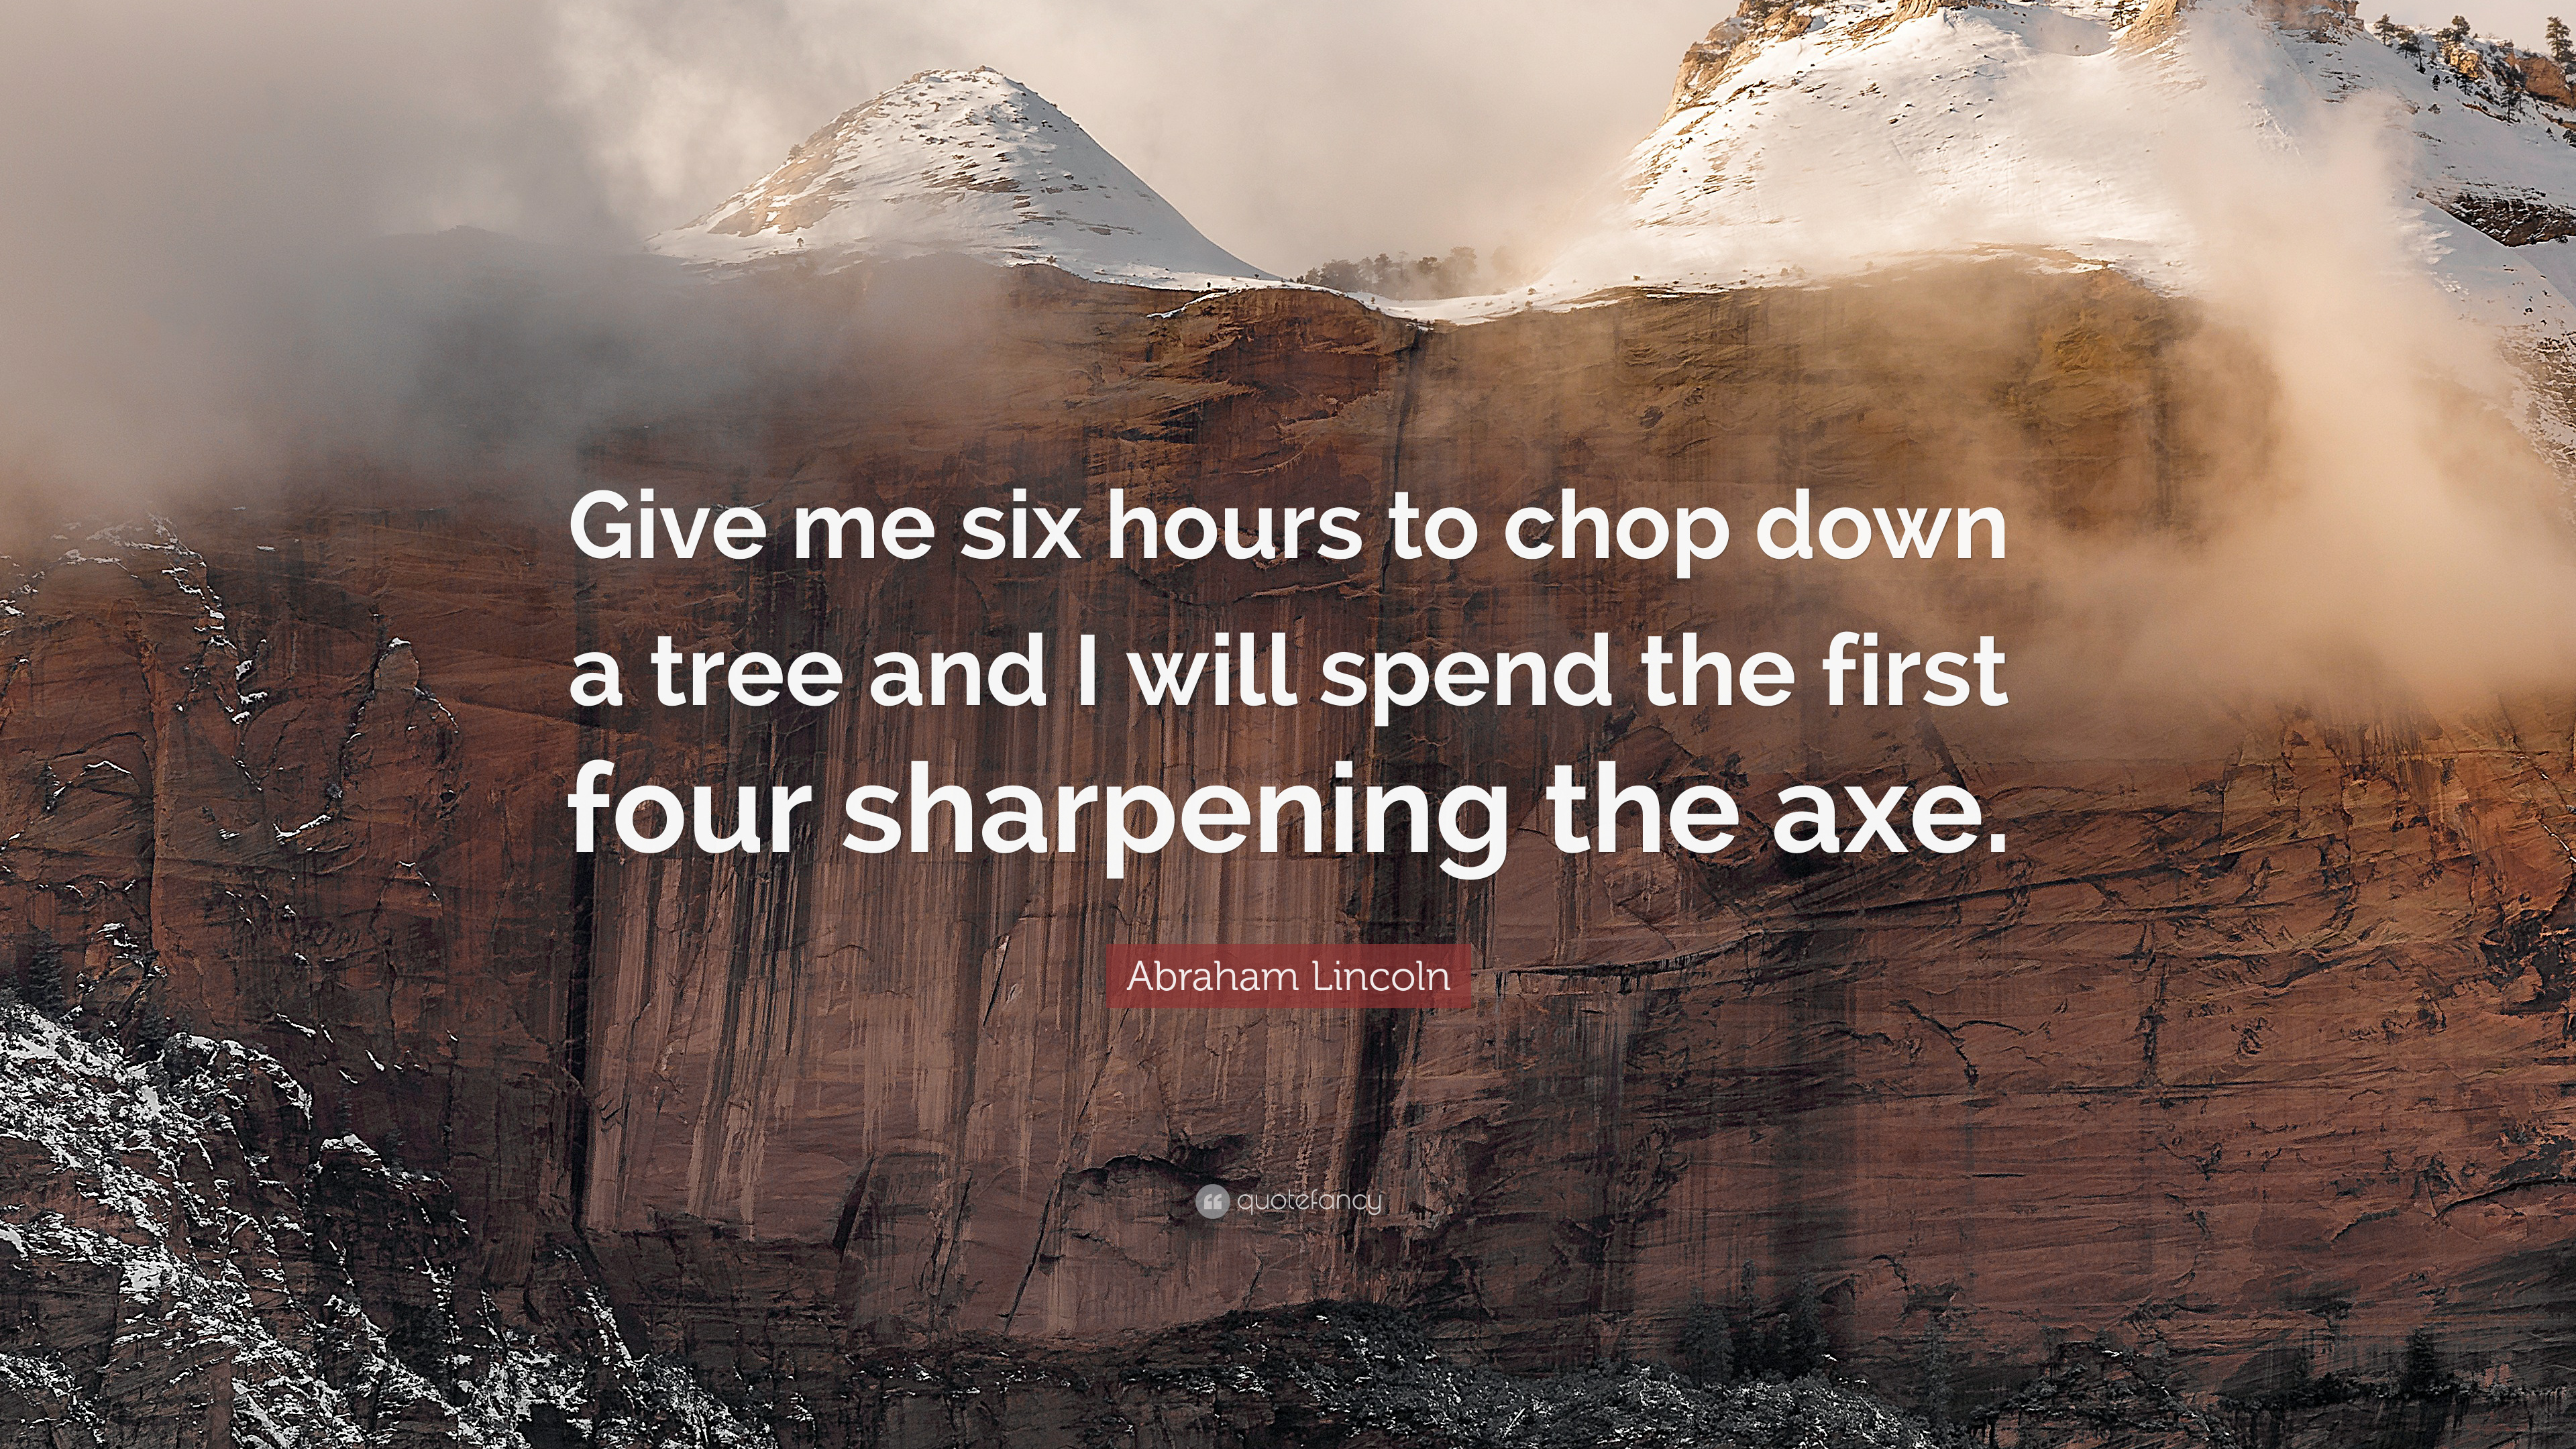 Fancy Quote Wallpaper Abraham Lincoln Quote Give Me Six Hours To Chop Down A